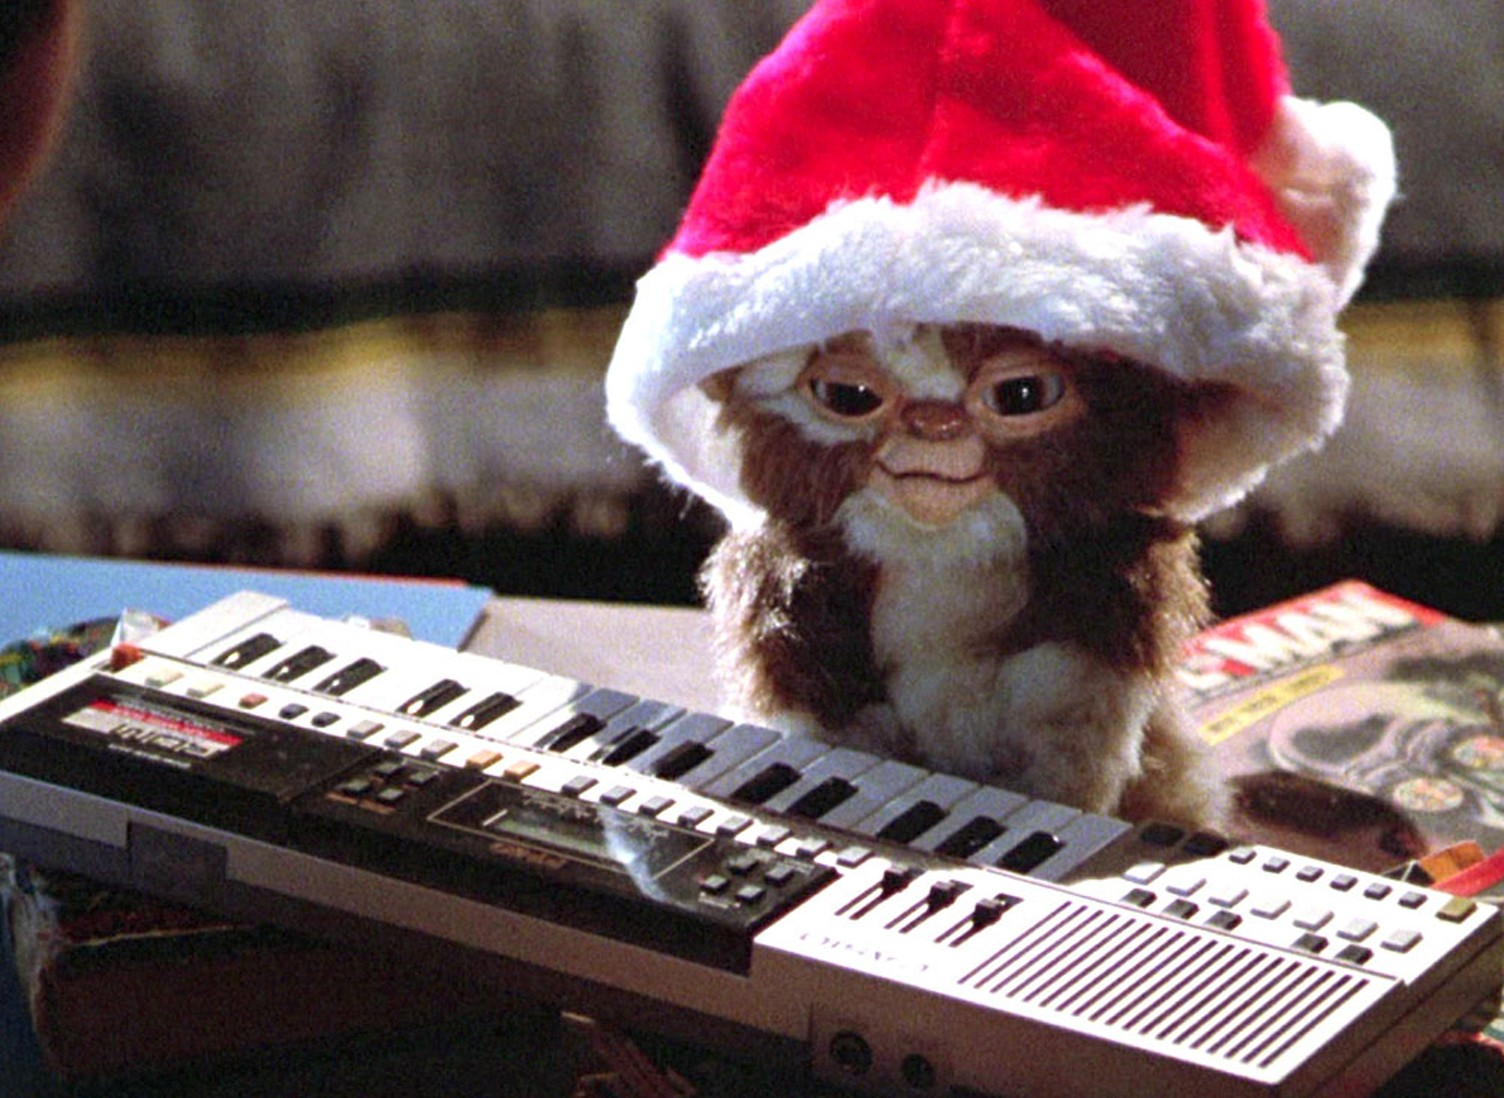 A gremlin wears a Santa hat and plays the keyboard in this non-traditional Christmas movie.